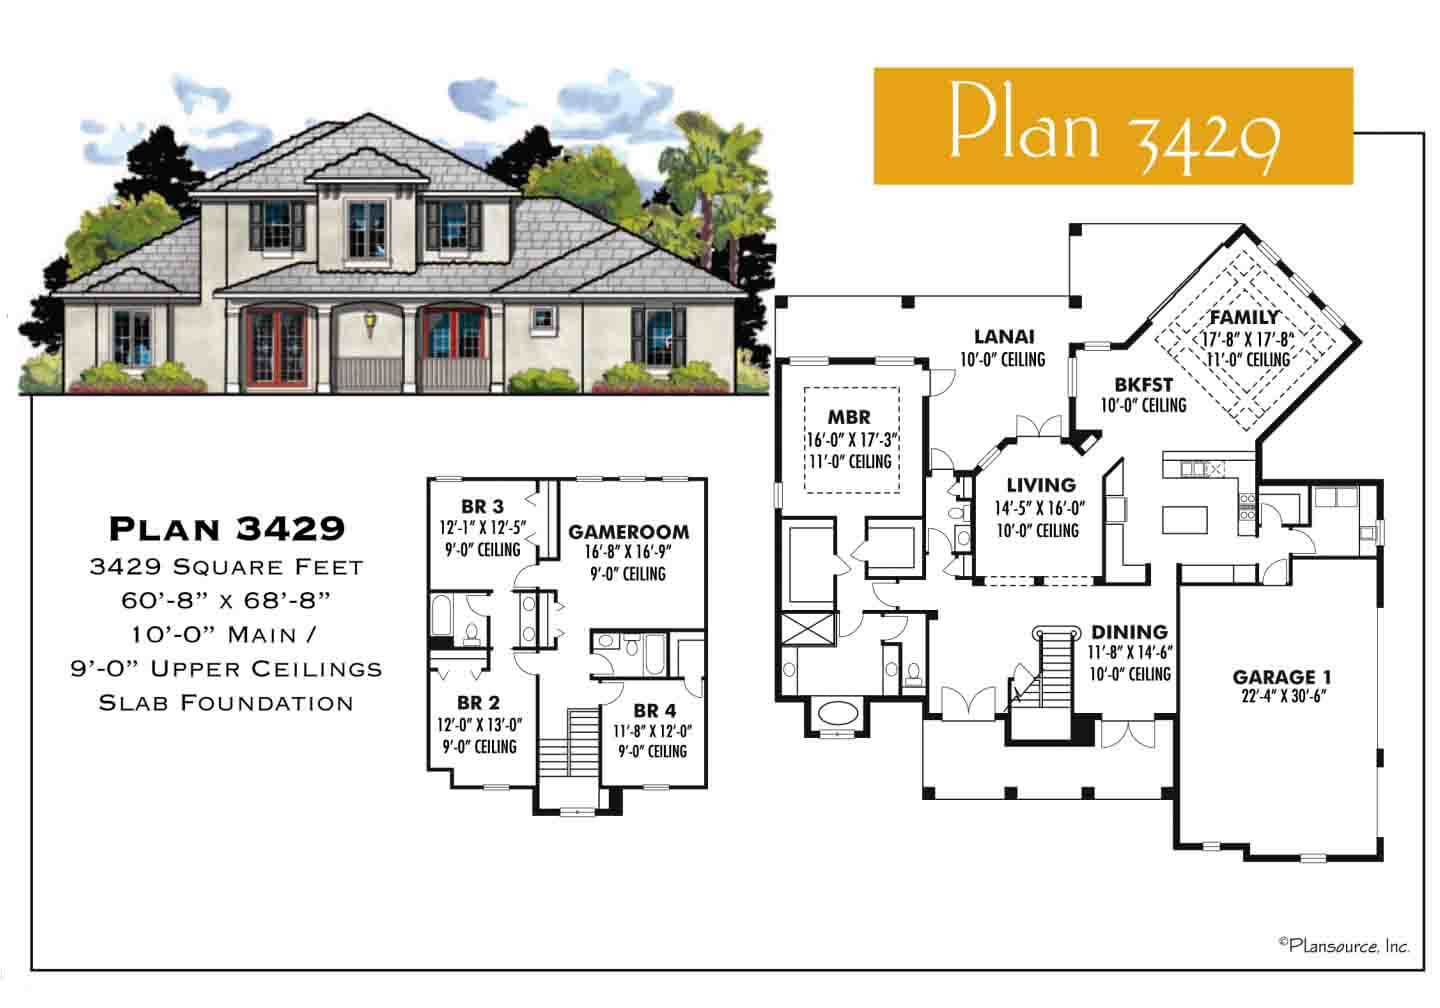 Floor Plans,3,001 SQ FT TO 3,500 SQ FT,1089